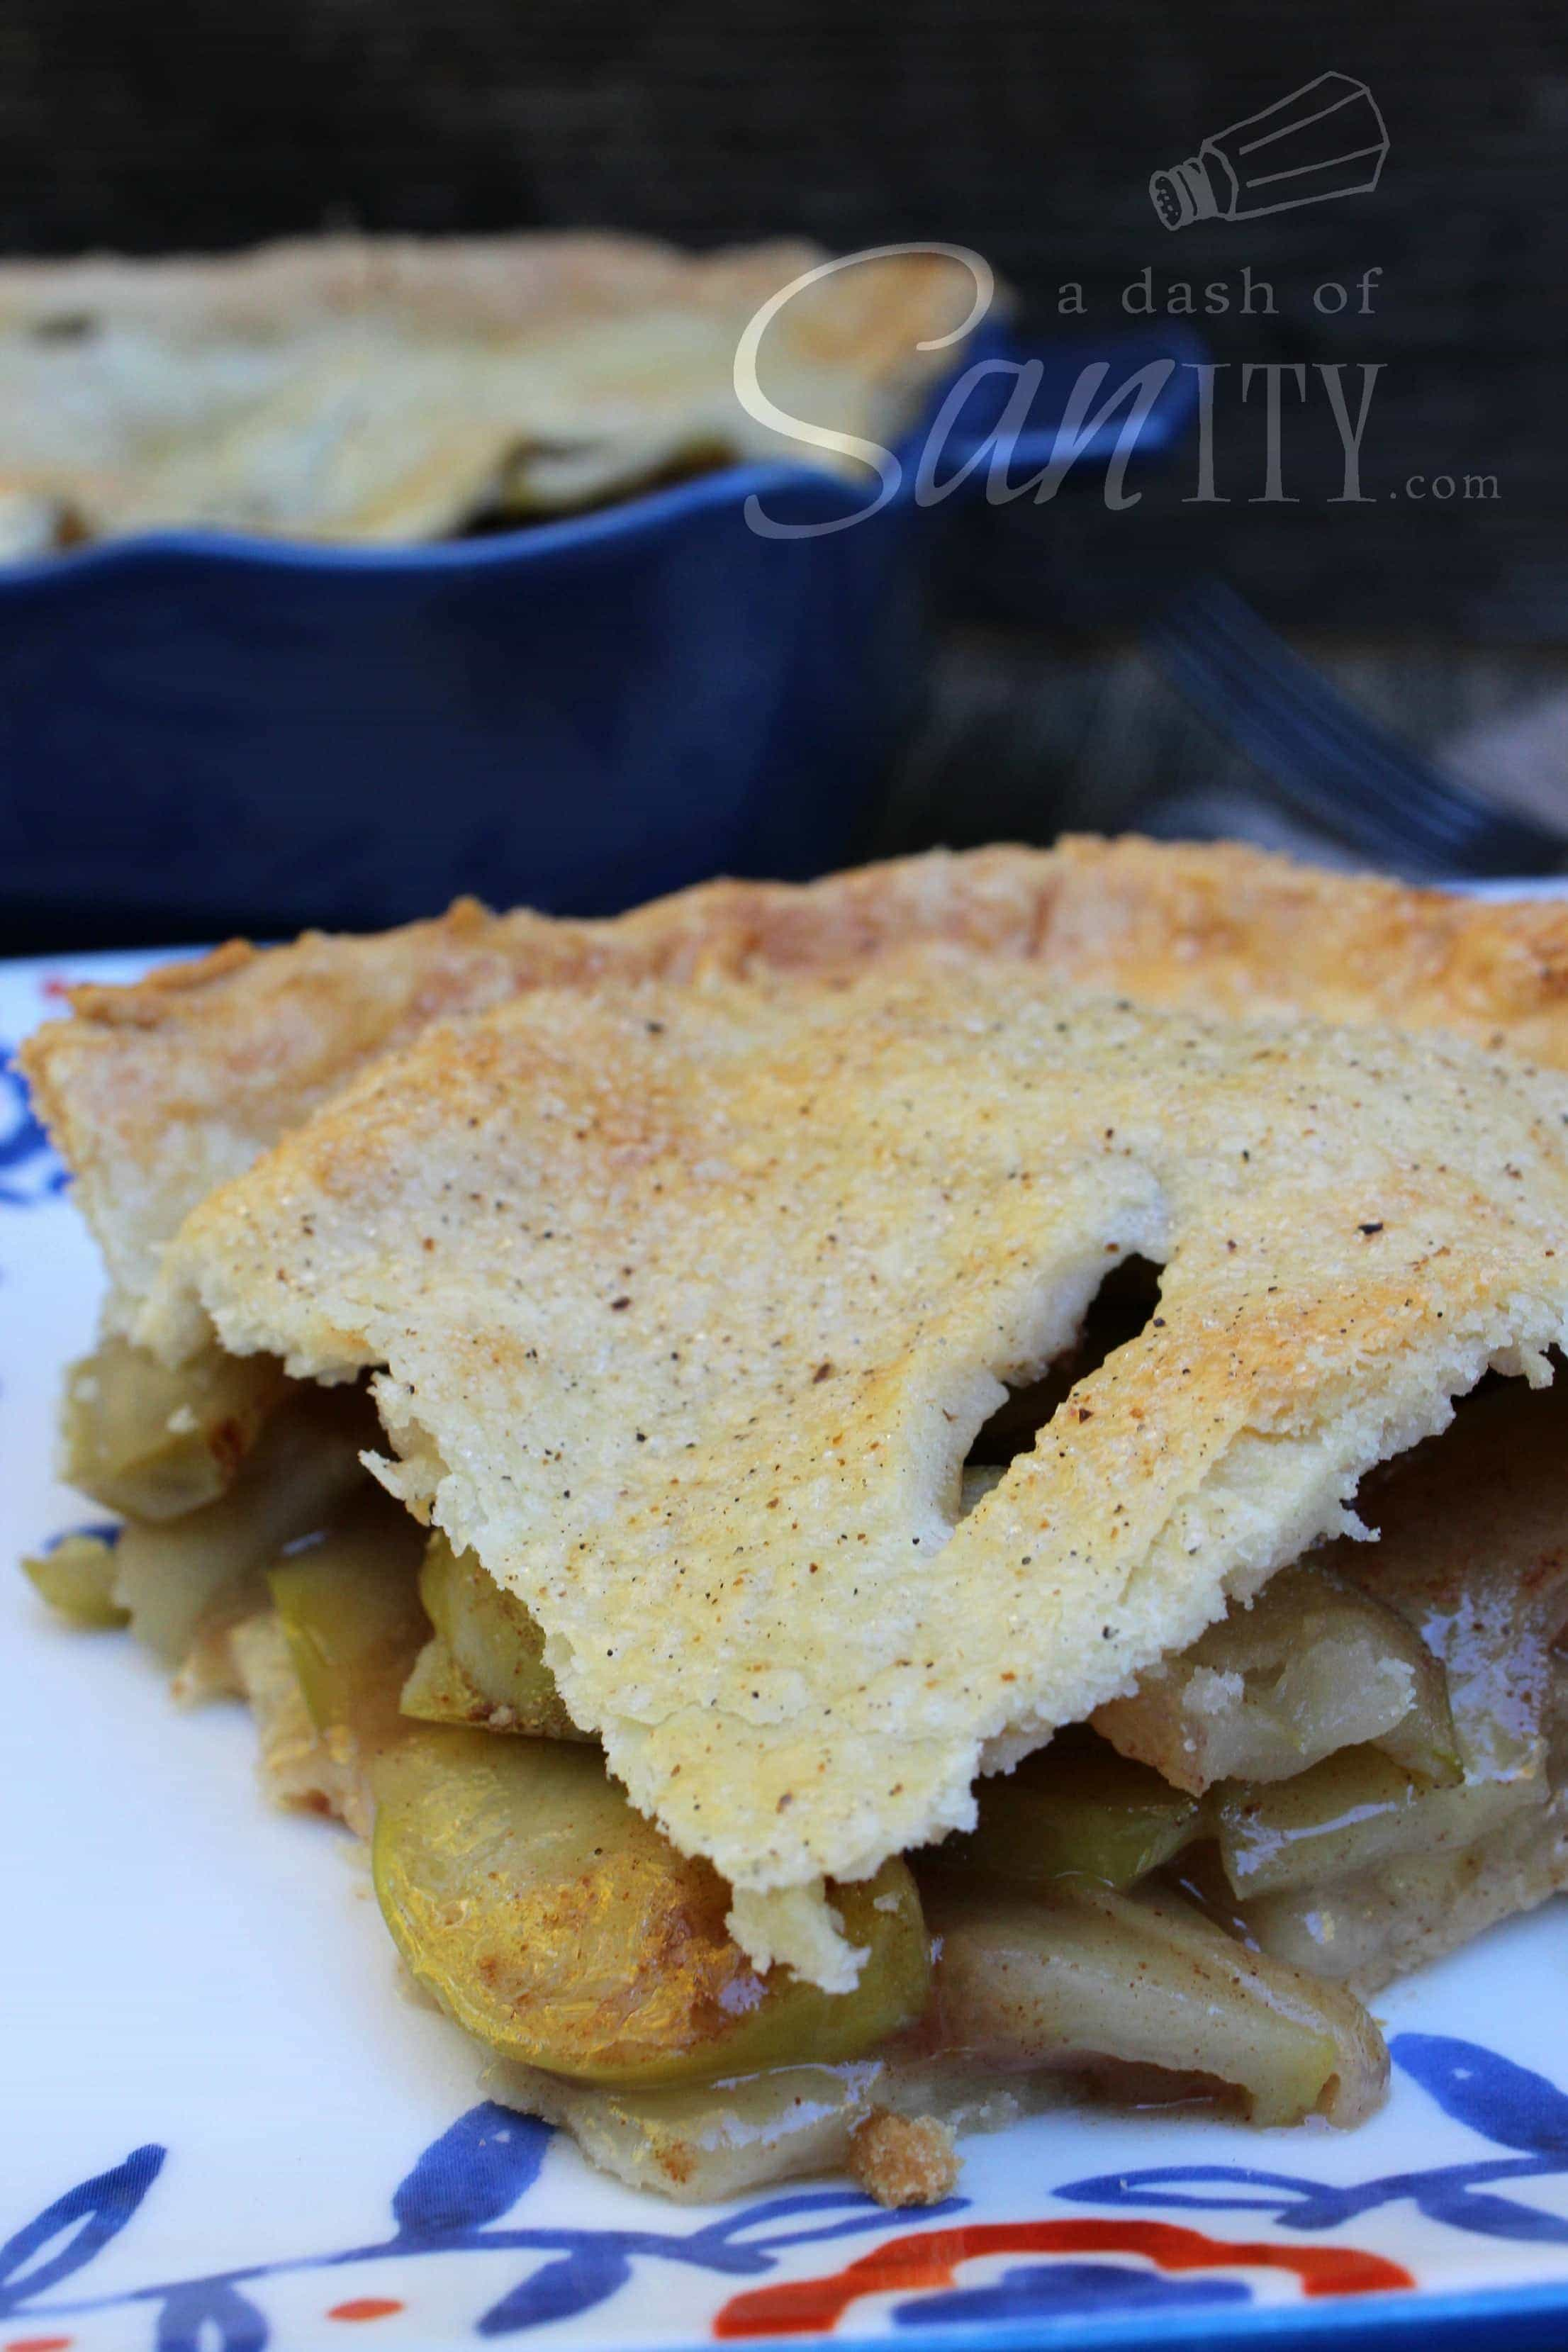 Maple Apple Pie is a twist on classic apple pie. With a homemade crust and a sweet maple-glazed apple filling, this is a perfect dessert any time of year.